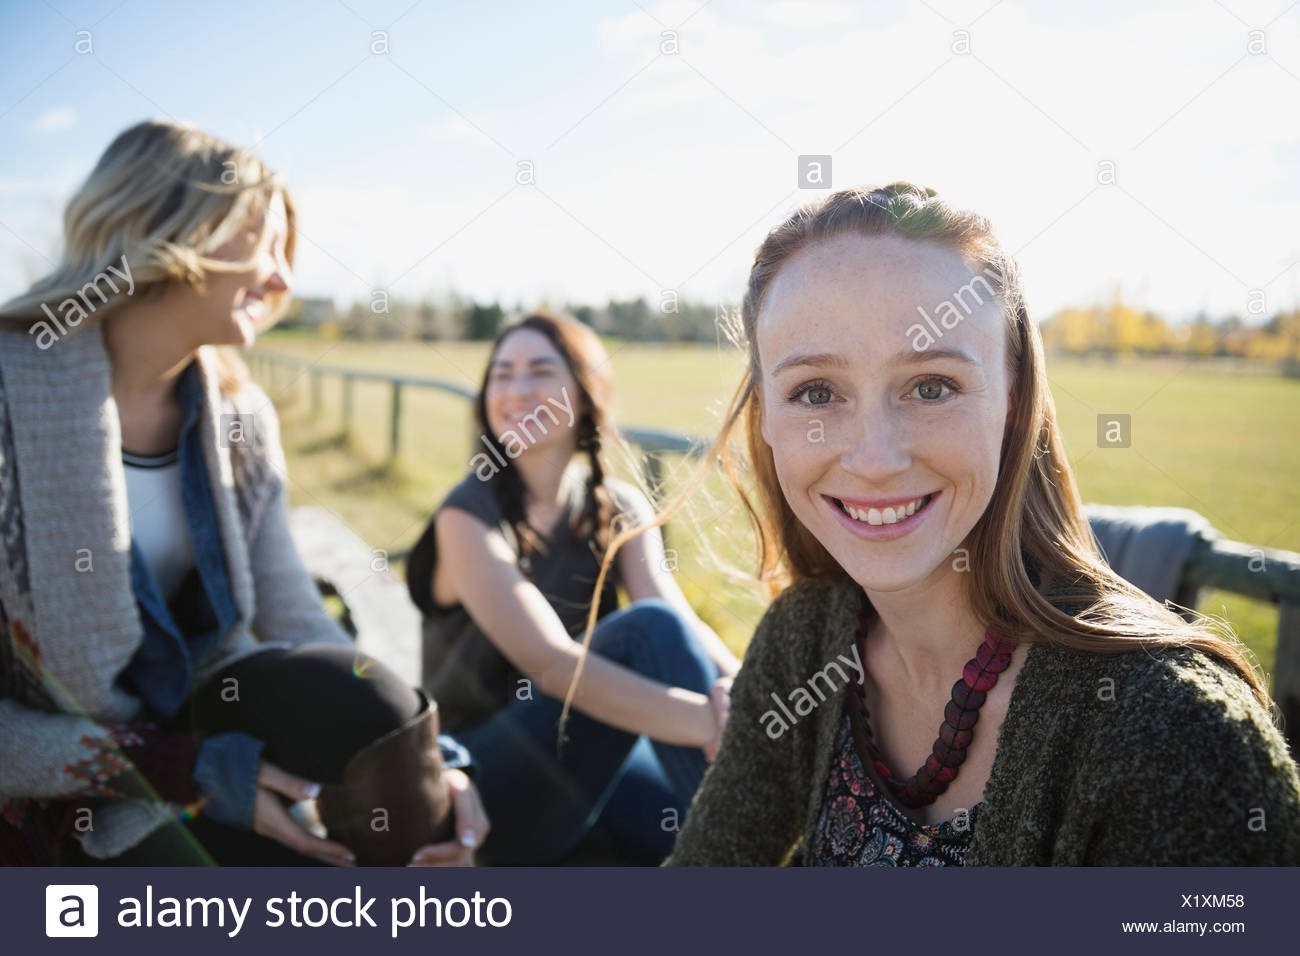 Portrait smiling young woman with friends in park Stock Photo